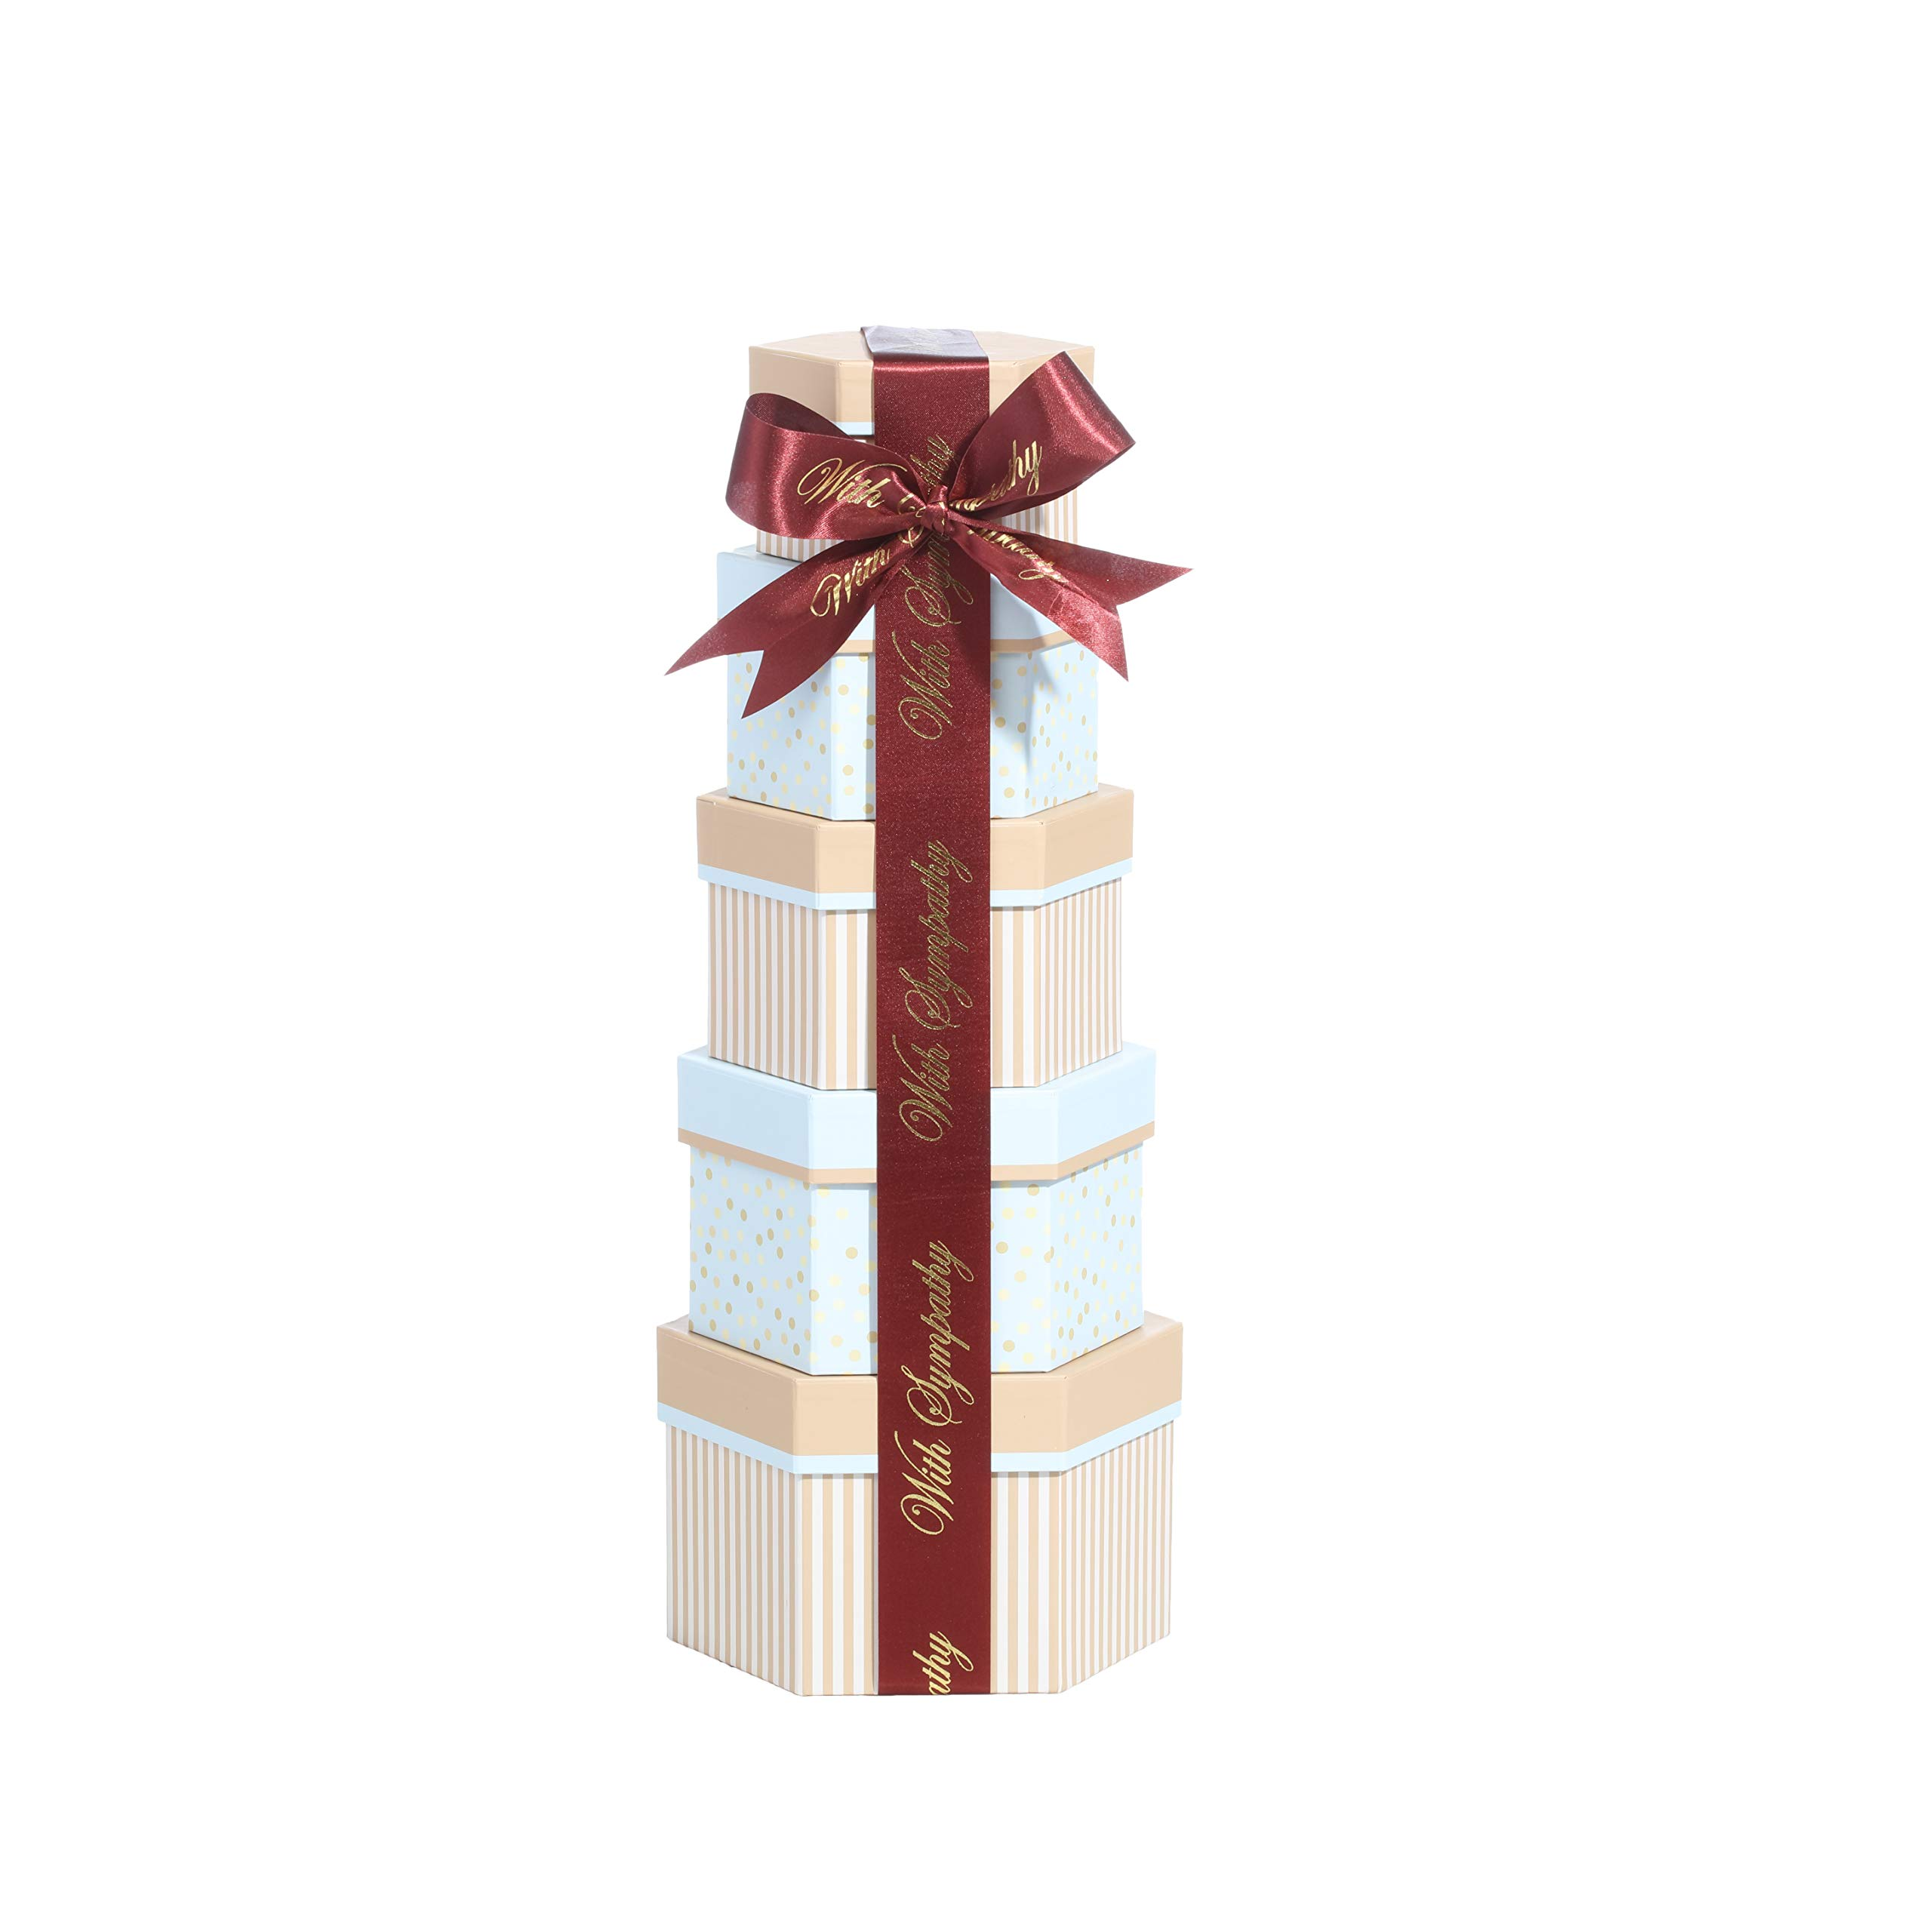 Broadway Basketeers With Sympathy Gift Basket by Broadway Basketeers (Image #2)